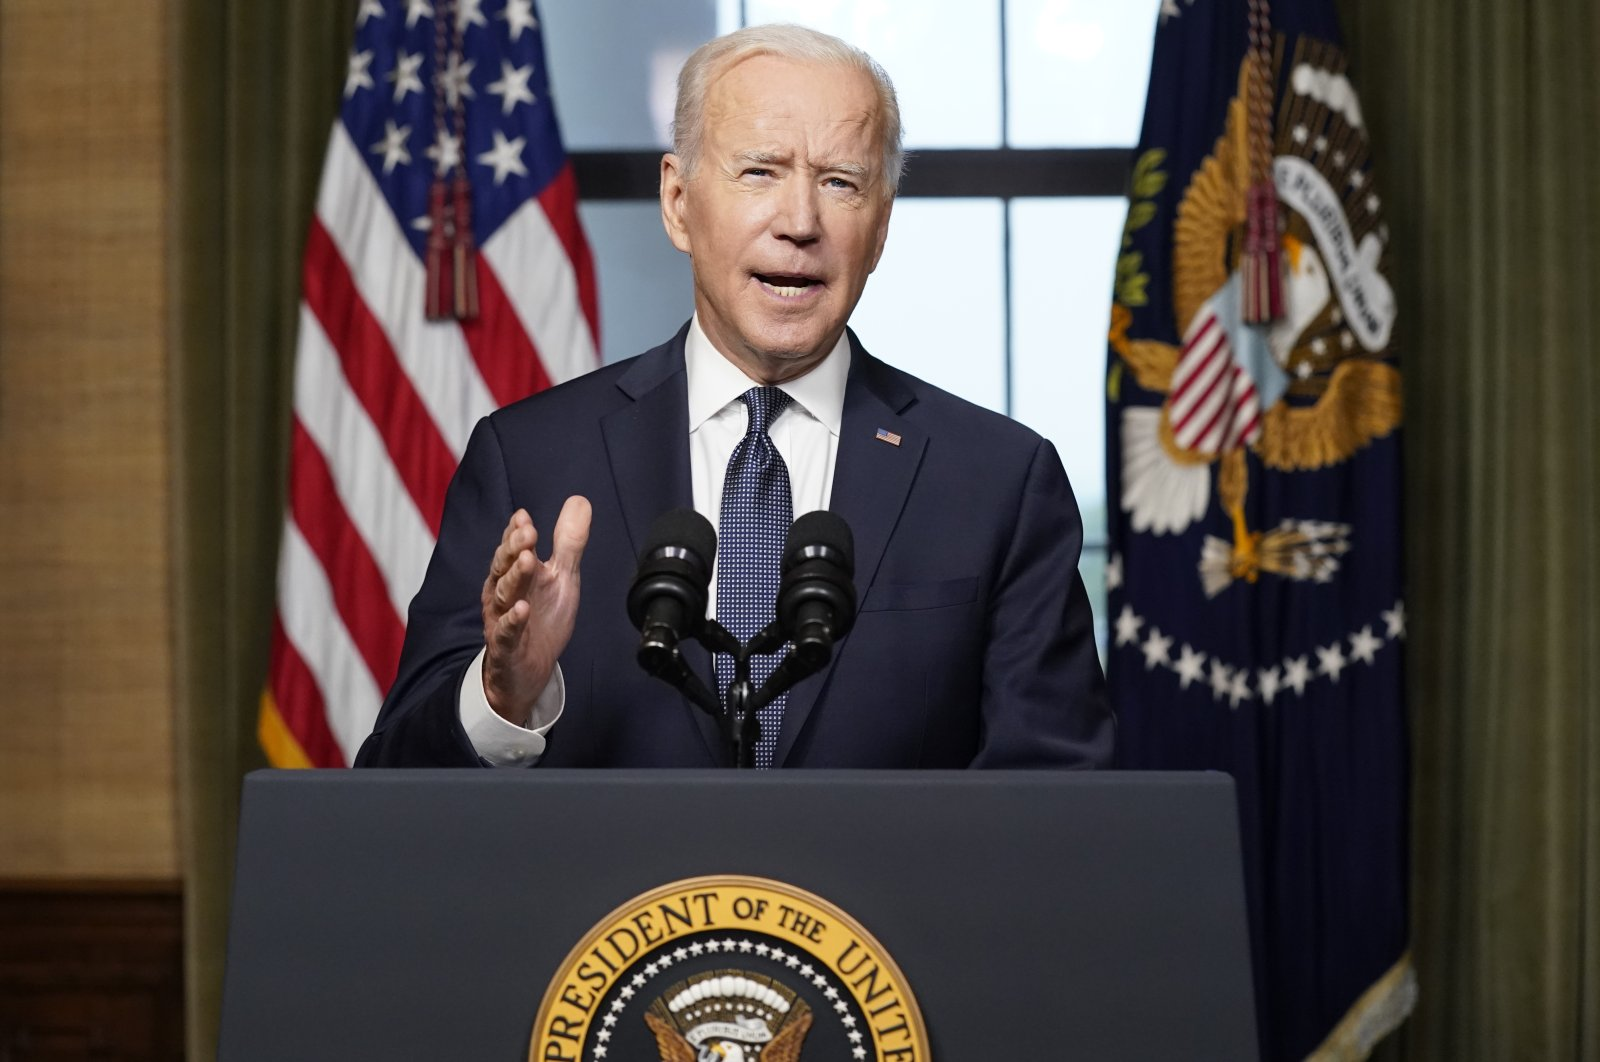 President Joe Biden speaks from the Treaty Room in the White House about the withdrawal of the remainder of U.S. troops from Afghanistan, in Washington, U.S., April 14, 2021. (AP Photo)